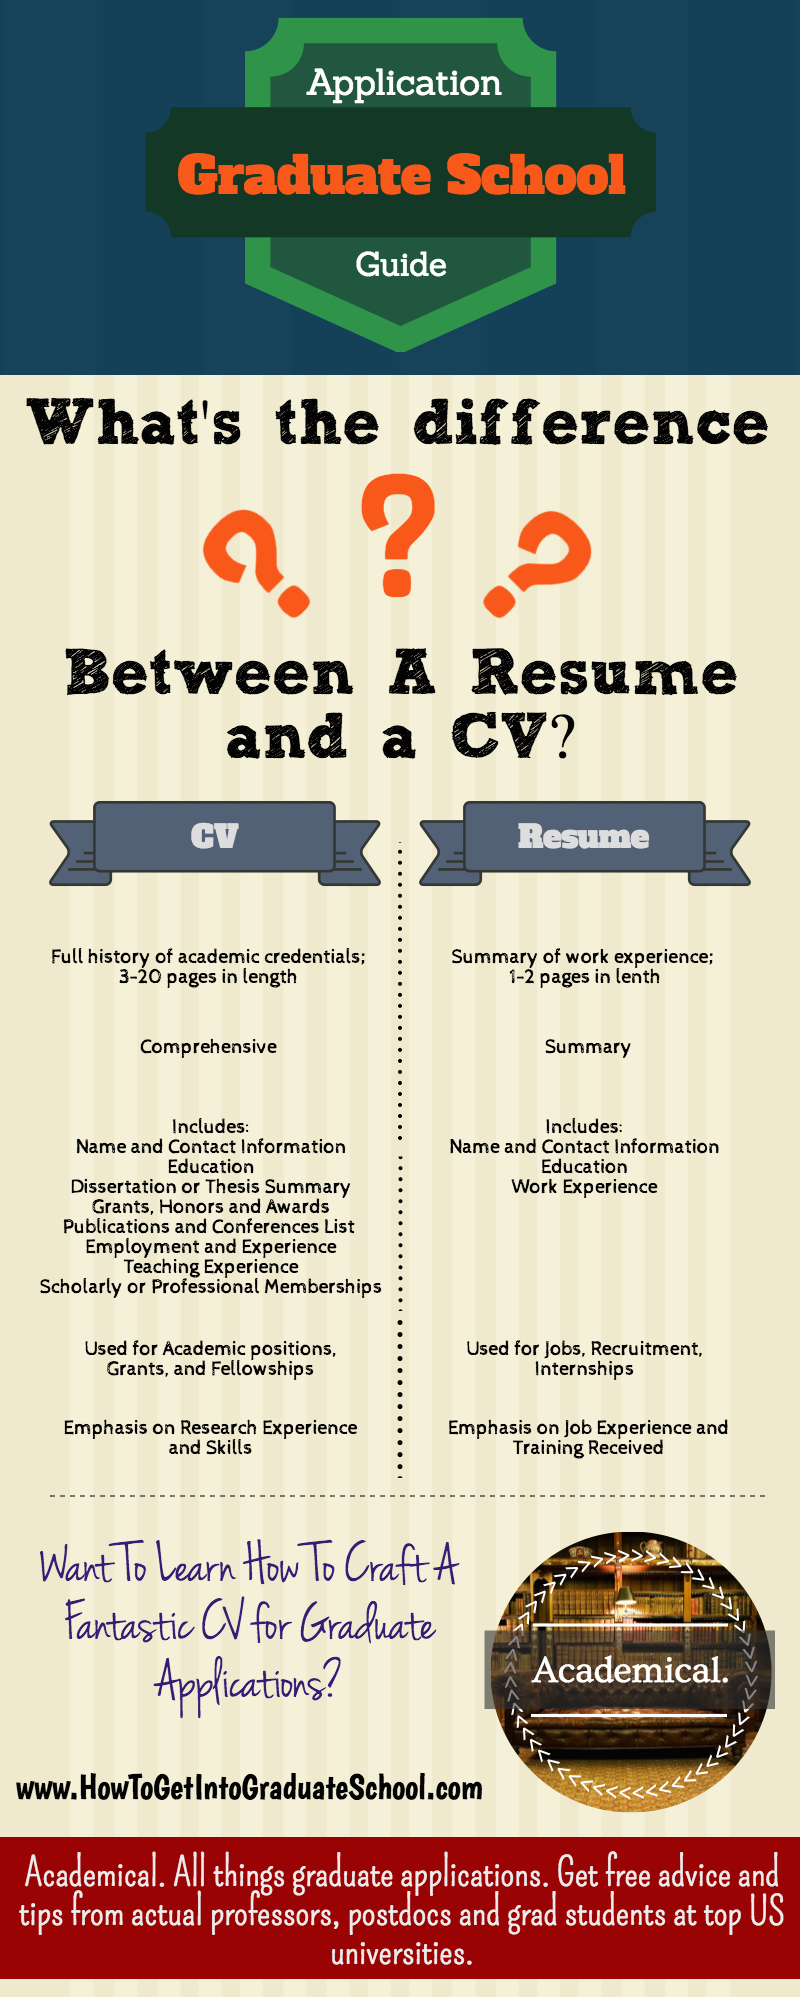 What's the difference between a Resume and a CV? Read